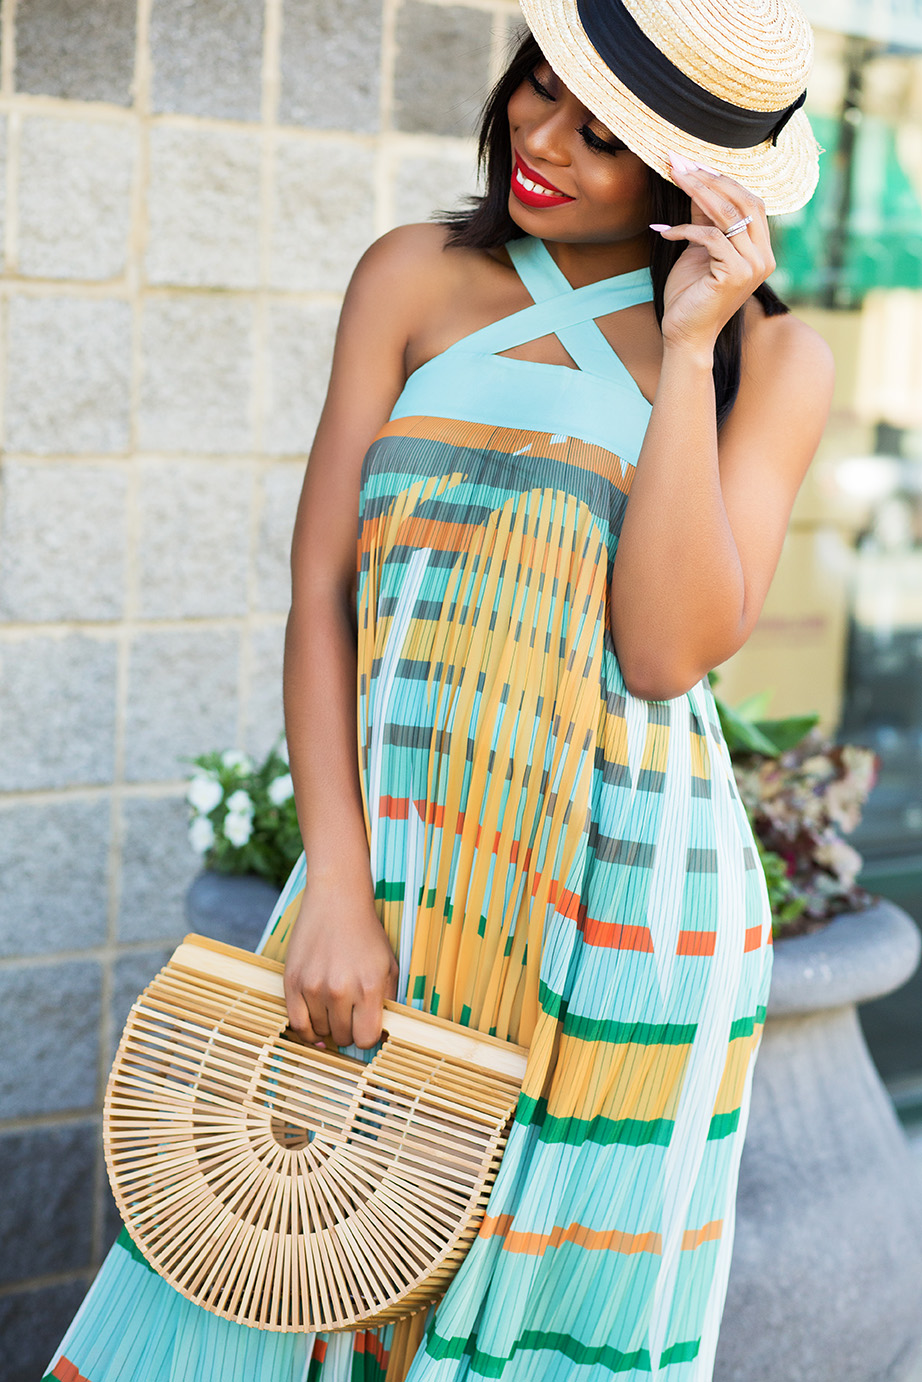 Pleated maxi dress, cult gaia bag, www.jadore-fashion.com